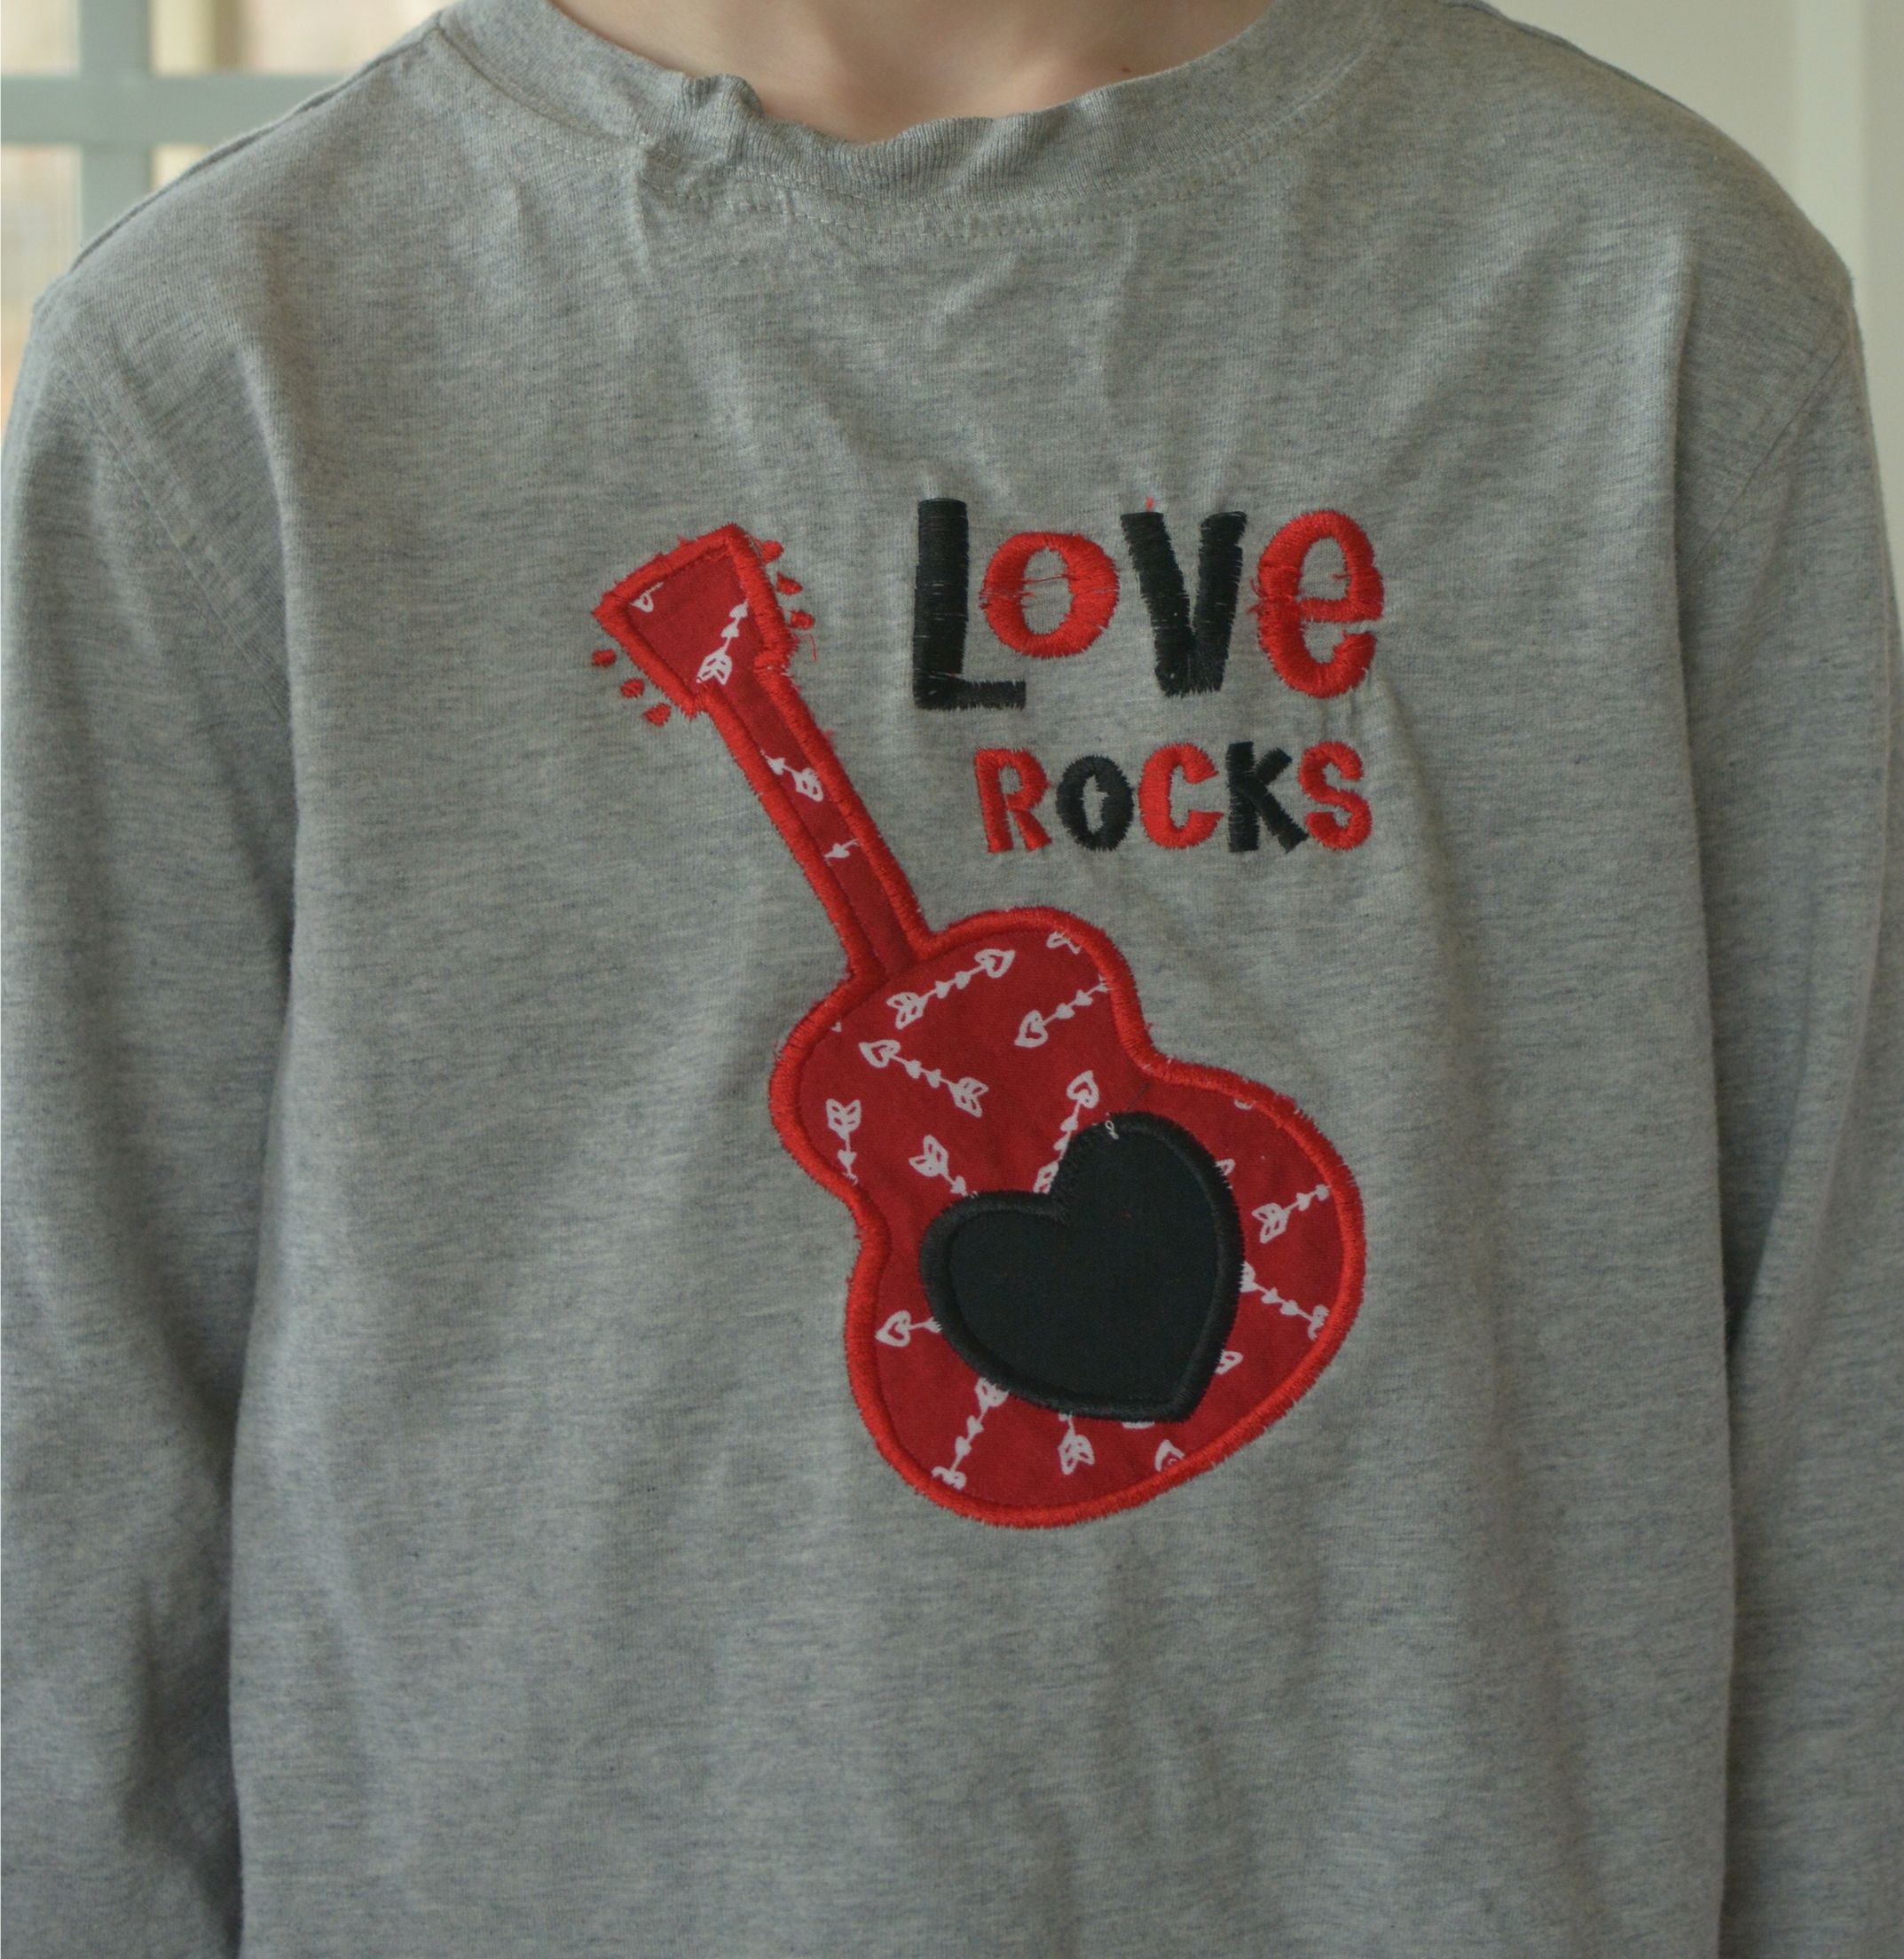 Valentine's Day Appliqué Shirt Created by cpmbycpm@gmail.com